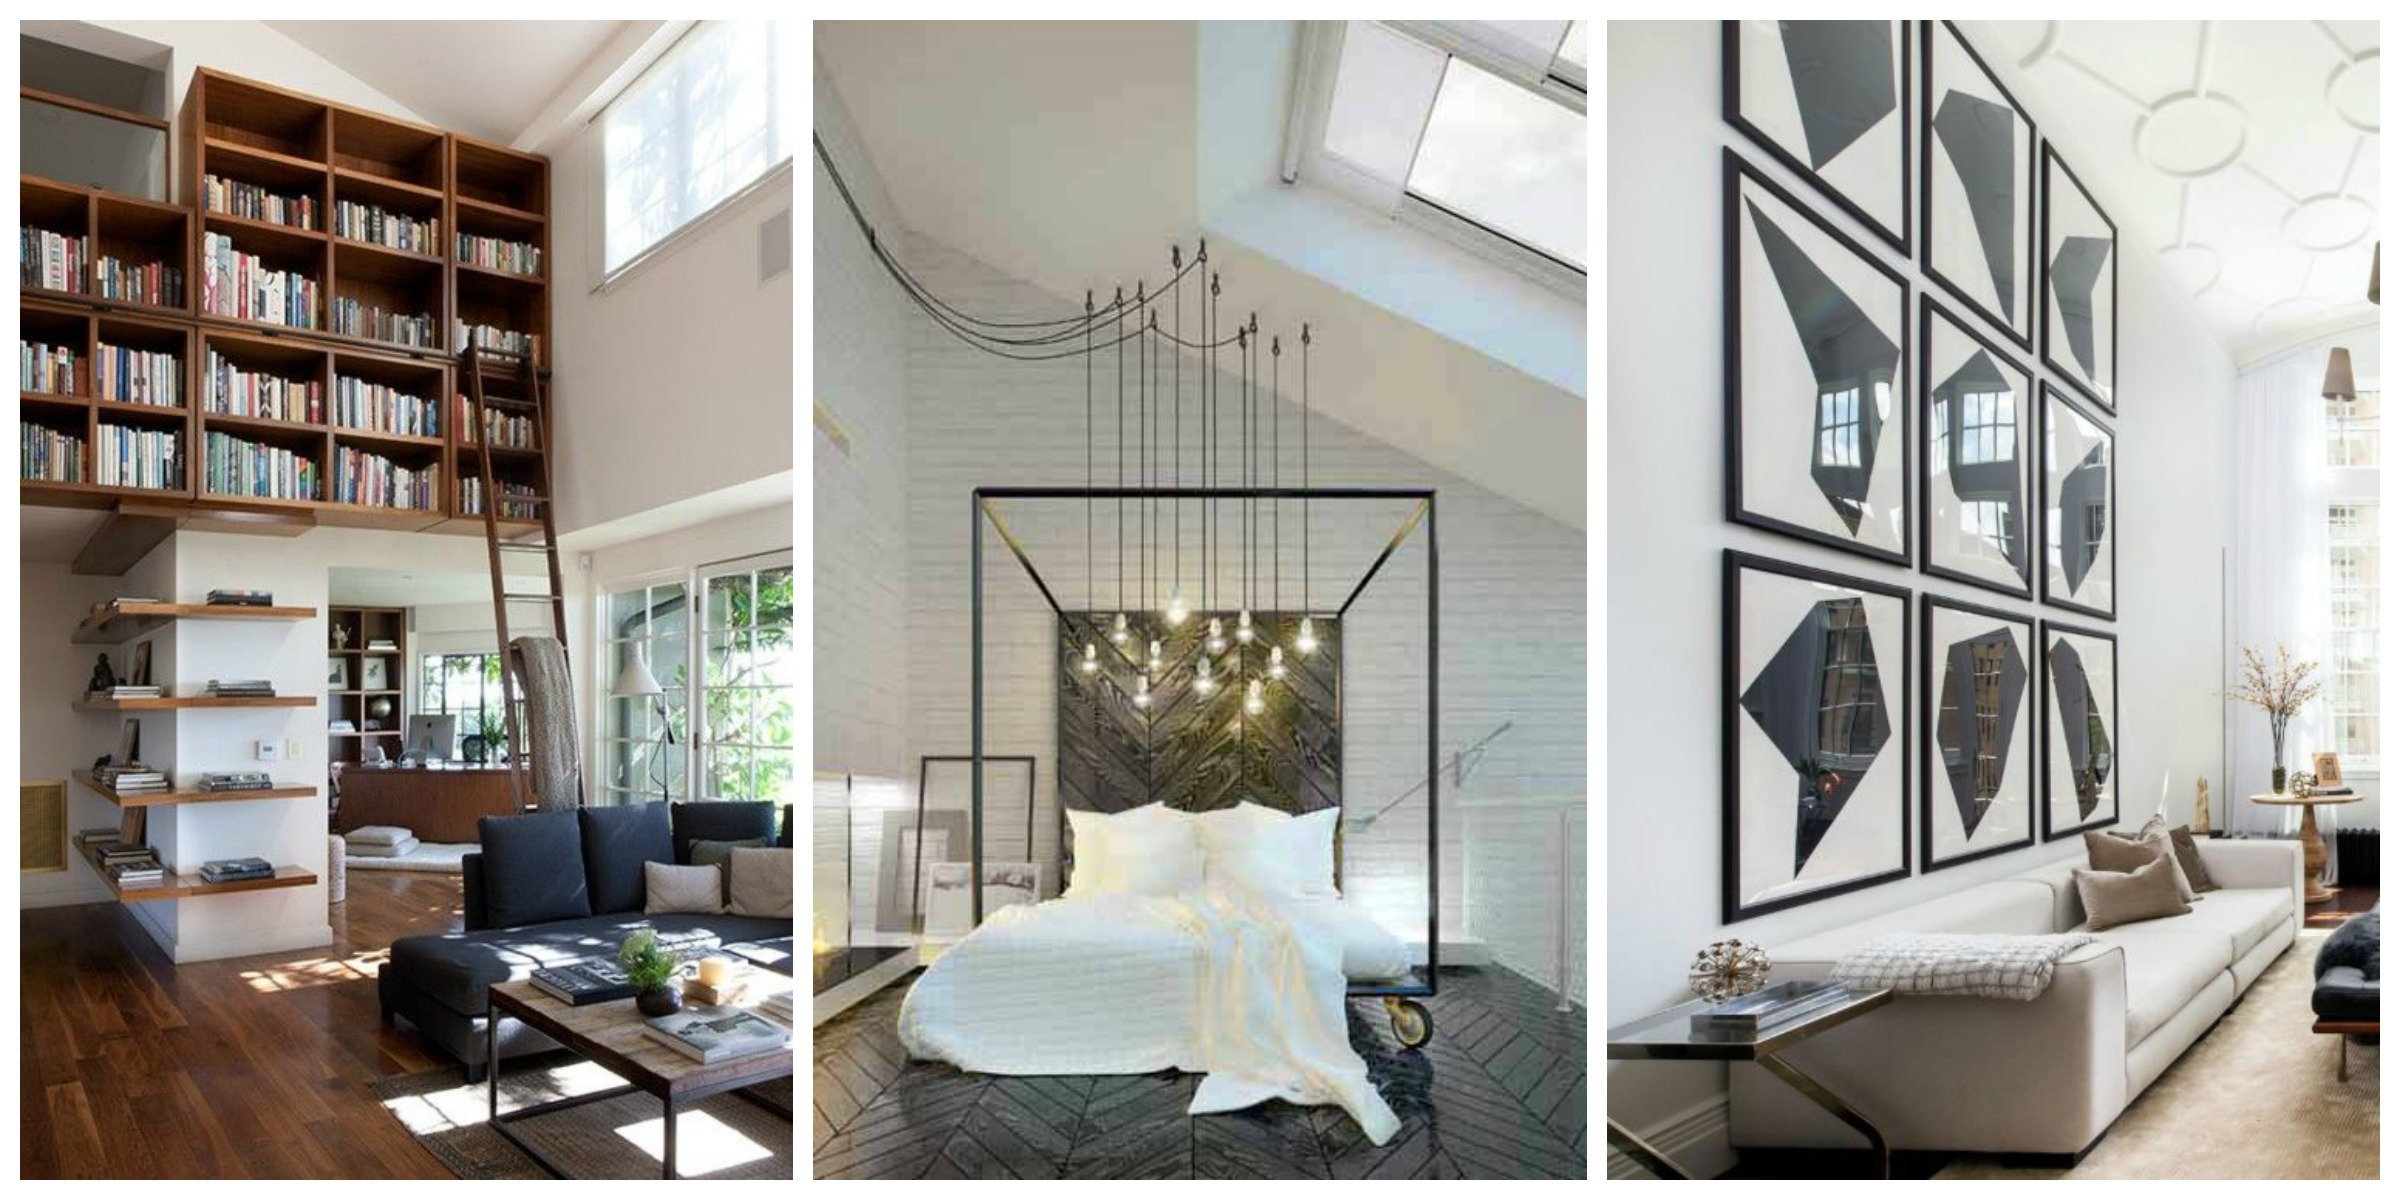 high ceiling living room decor ideas modern 2018 remodelaholic 24 on how to decorate tall walls